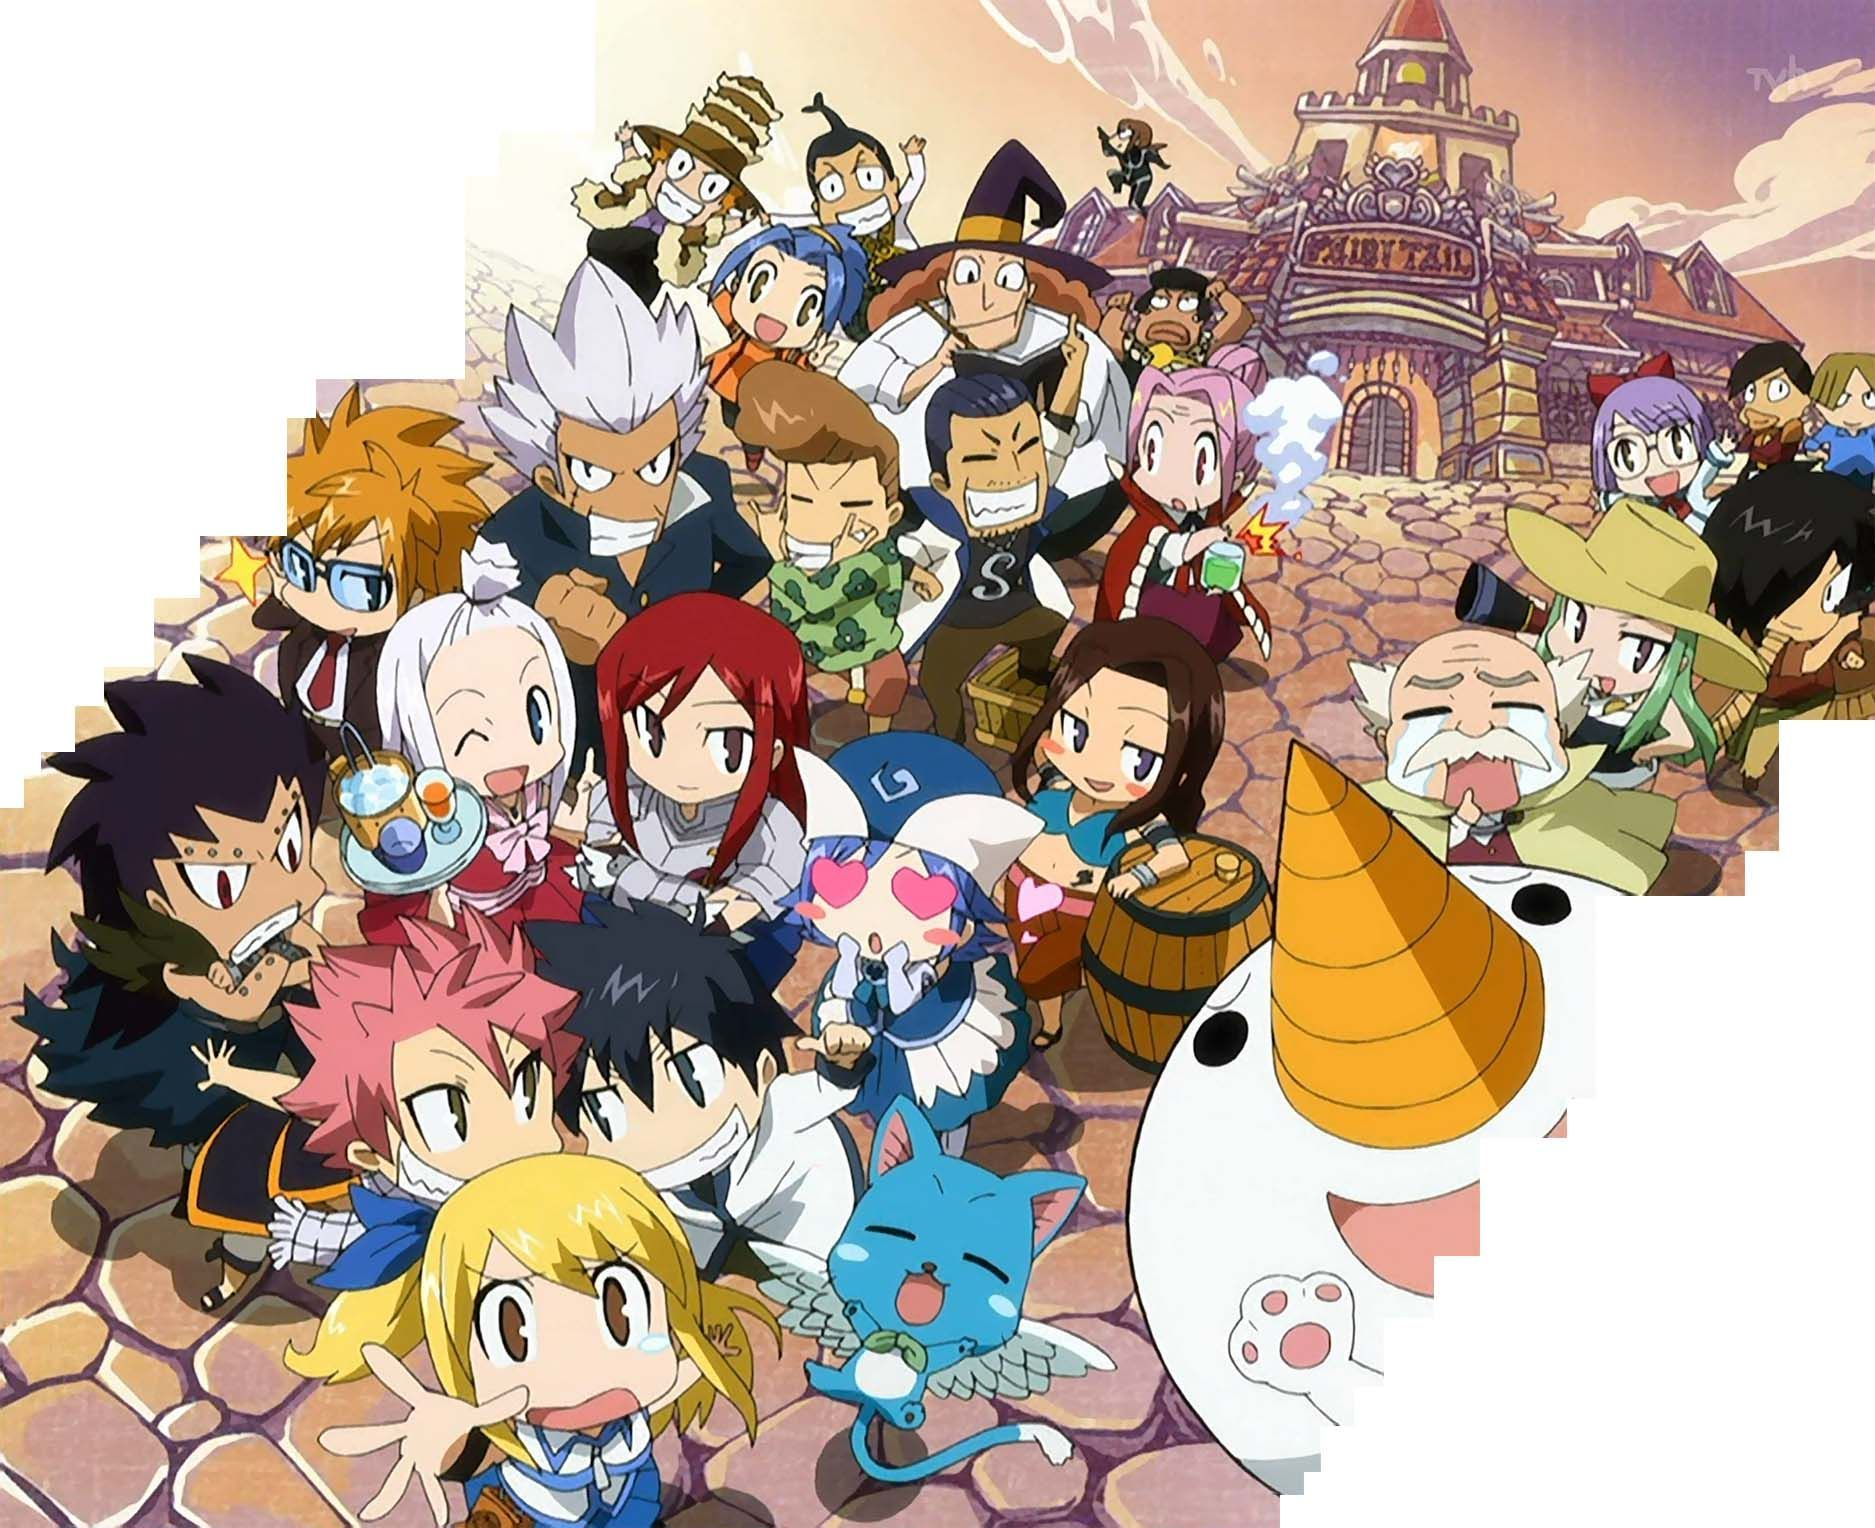 Chibi Fairy Tail Wallpapers Top Free Chibi Fairy Tail Backgrounds Wallpaperaccess